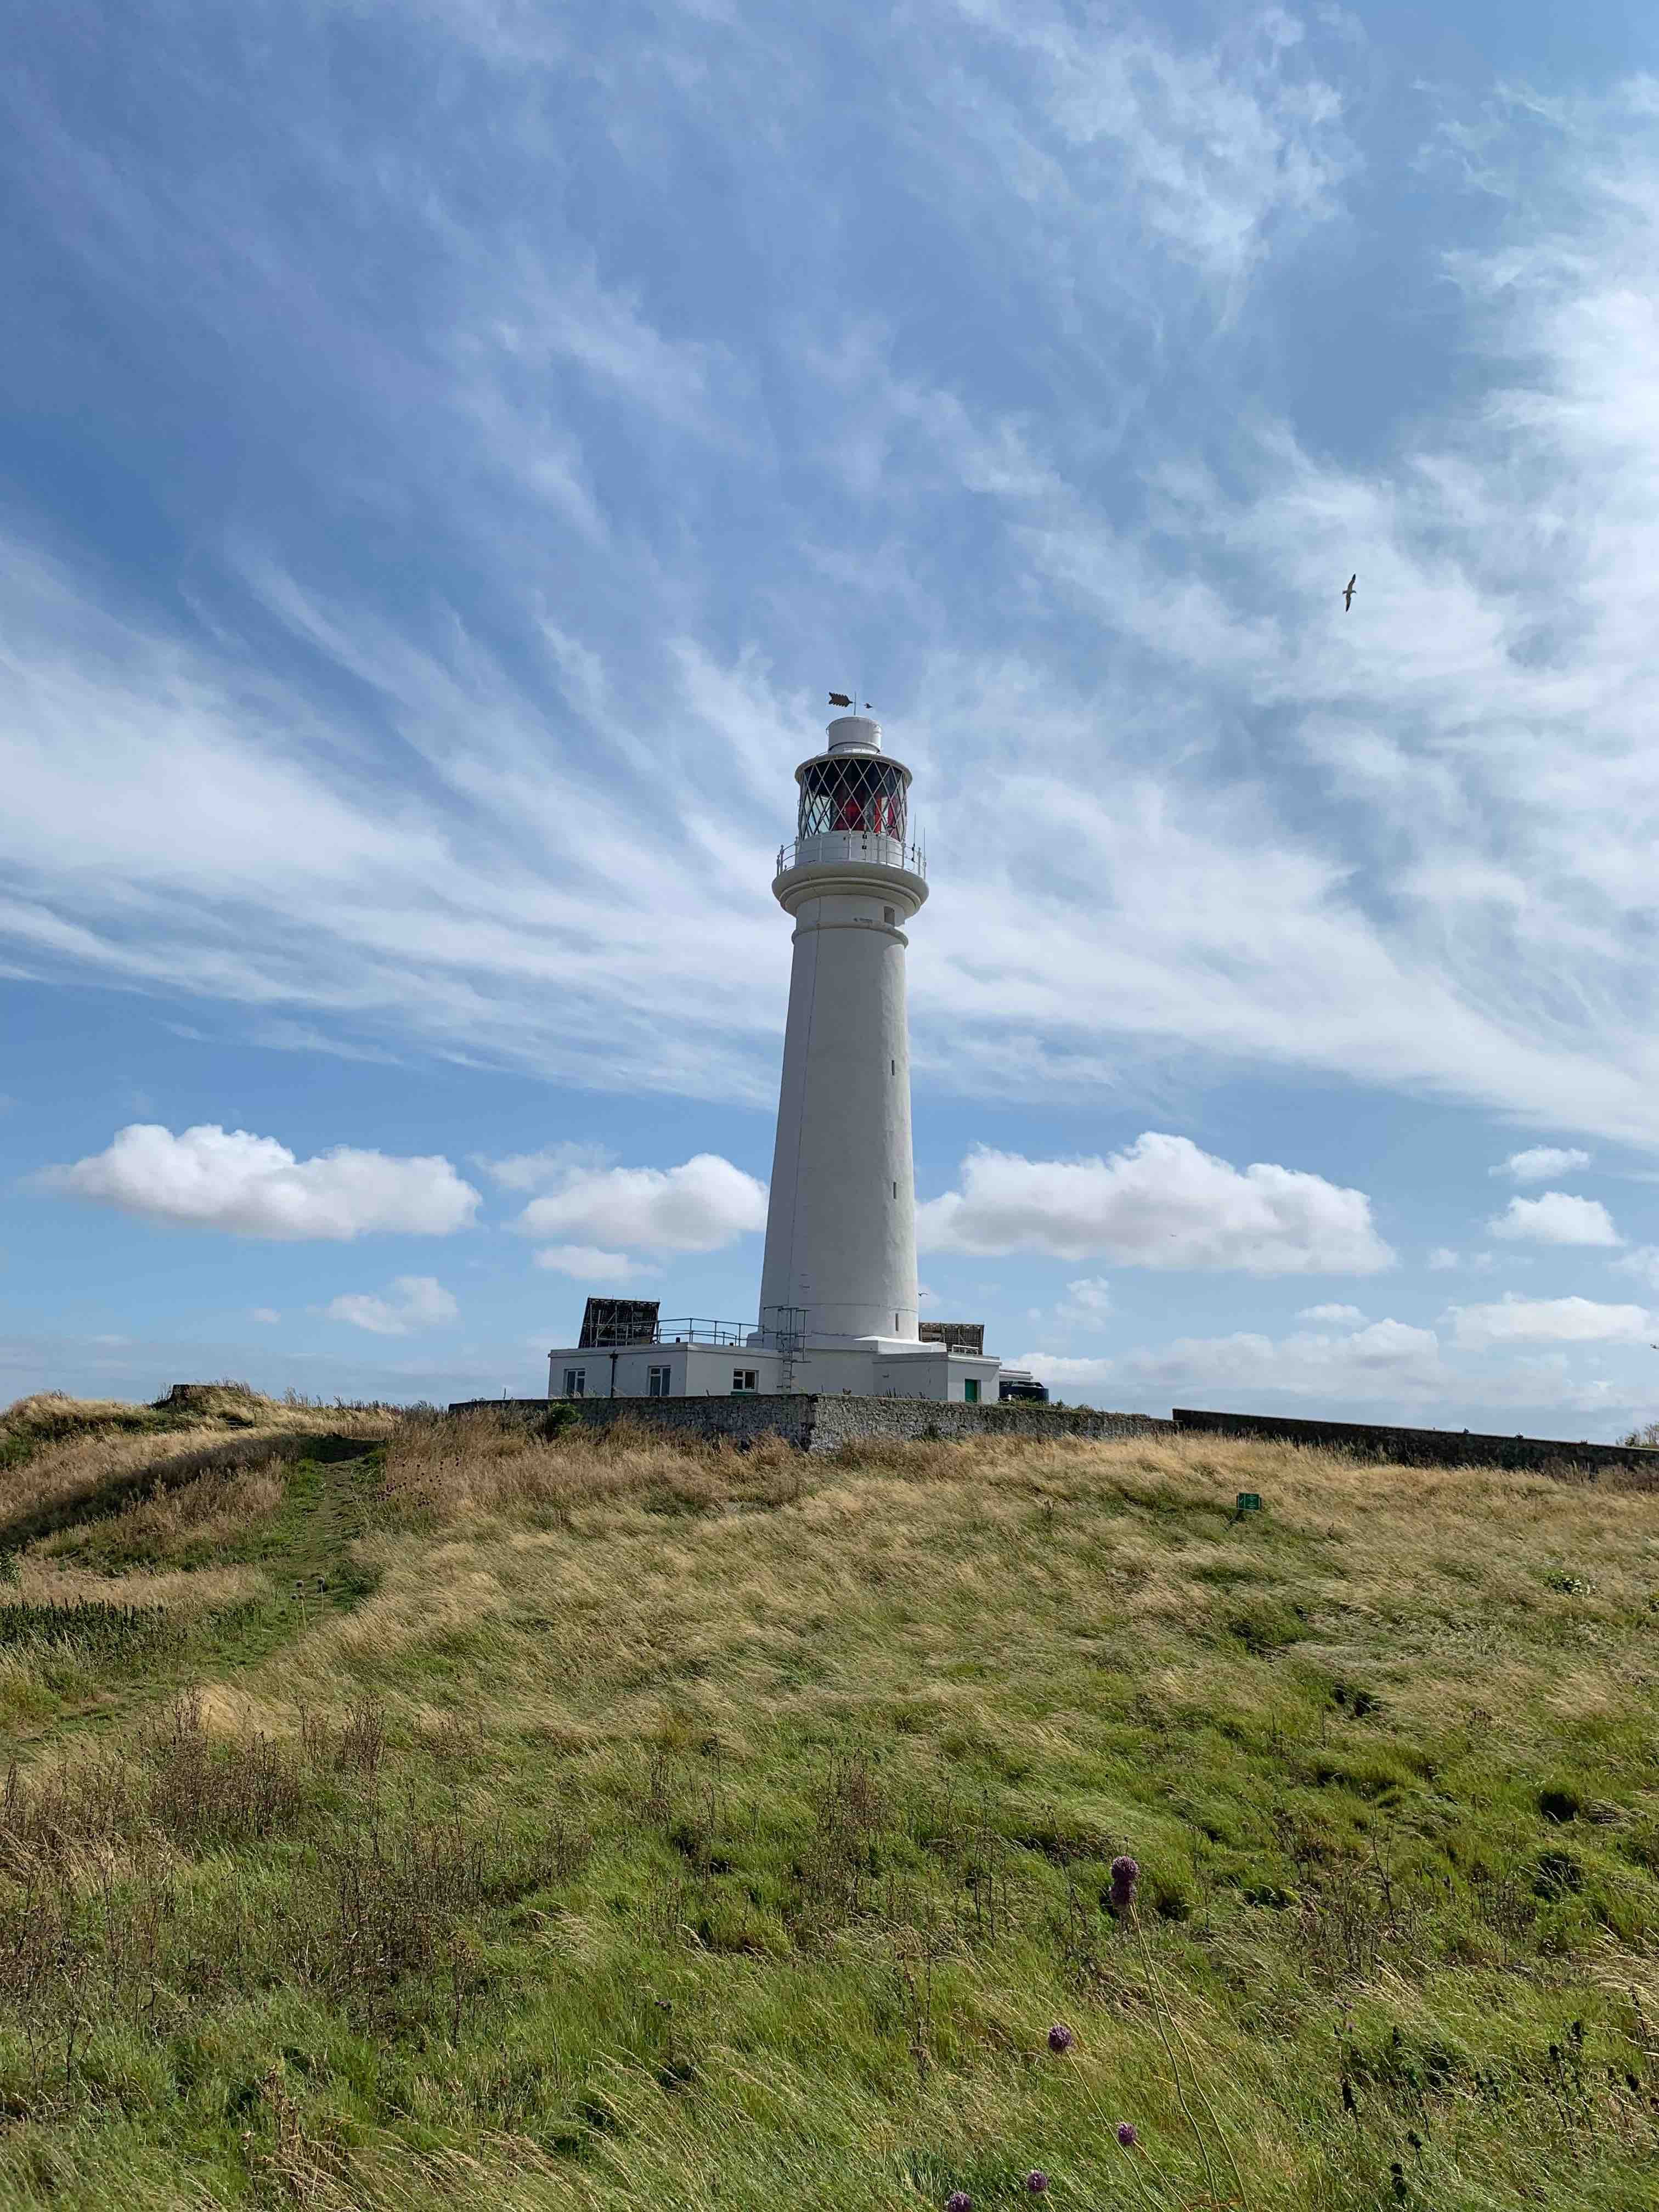 A picture of the lighthouse on Flat Holm Island, with fluffy clouds passing